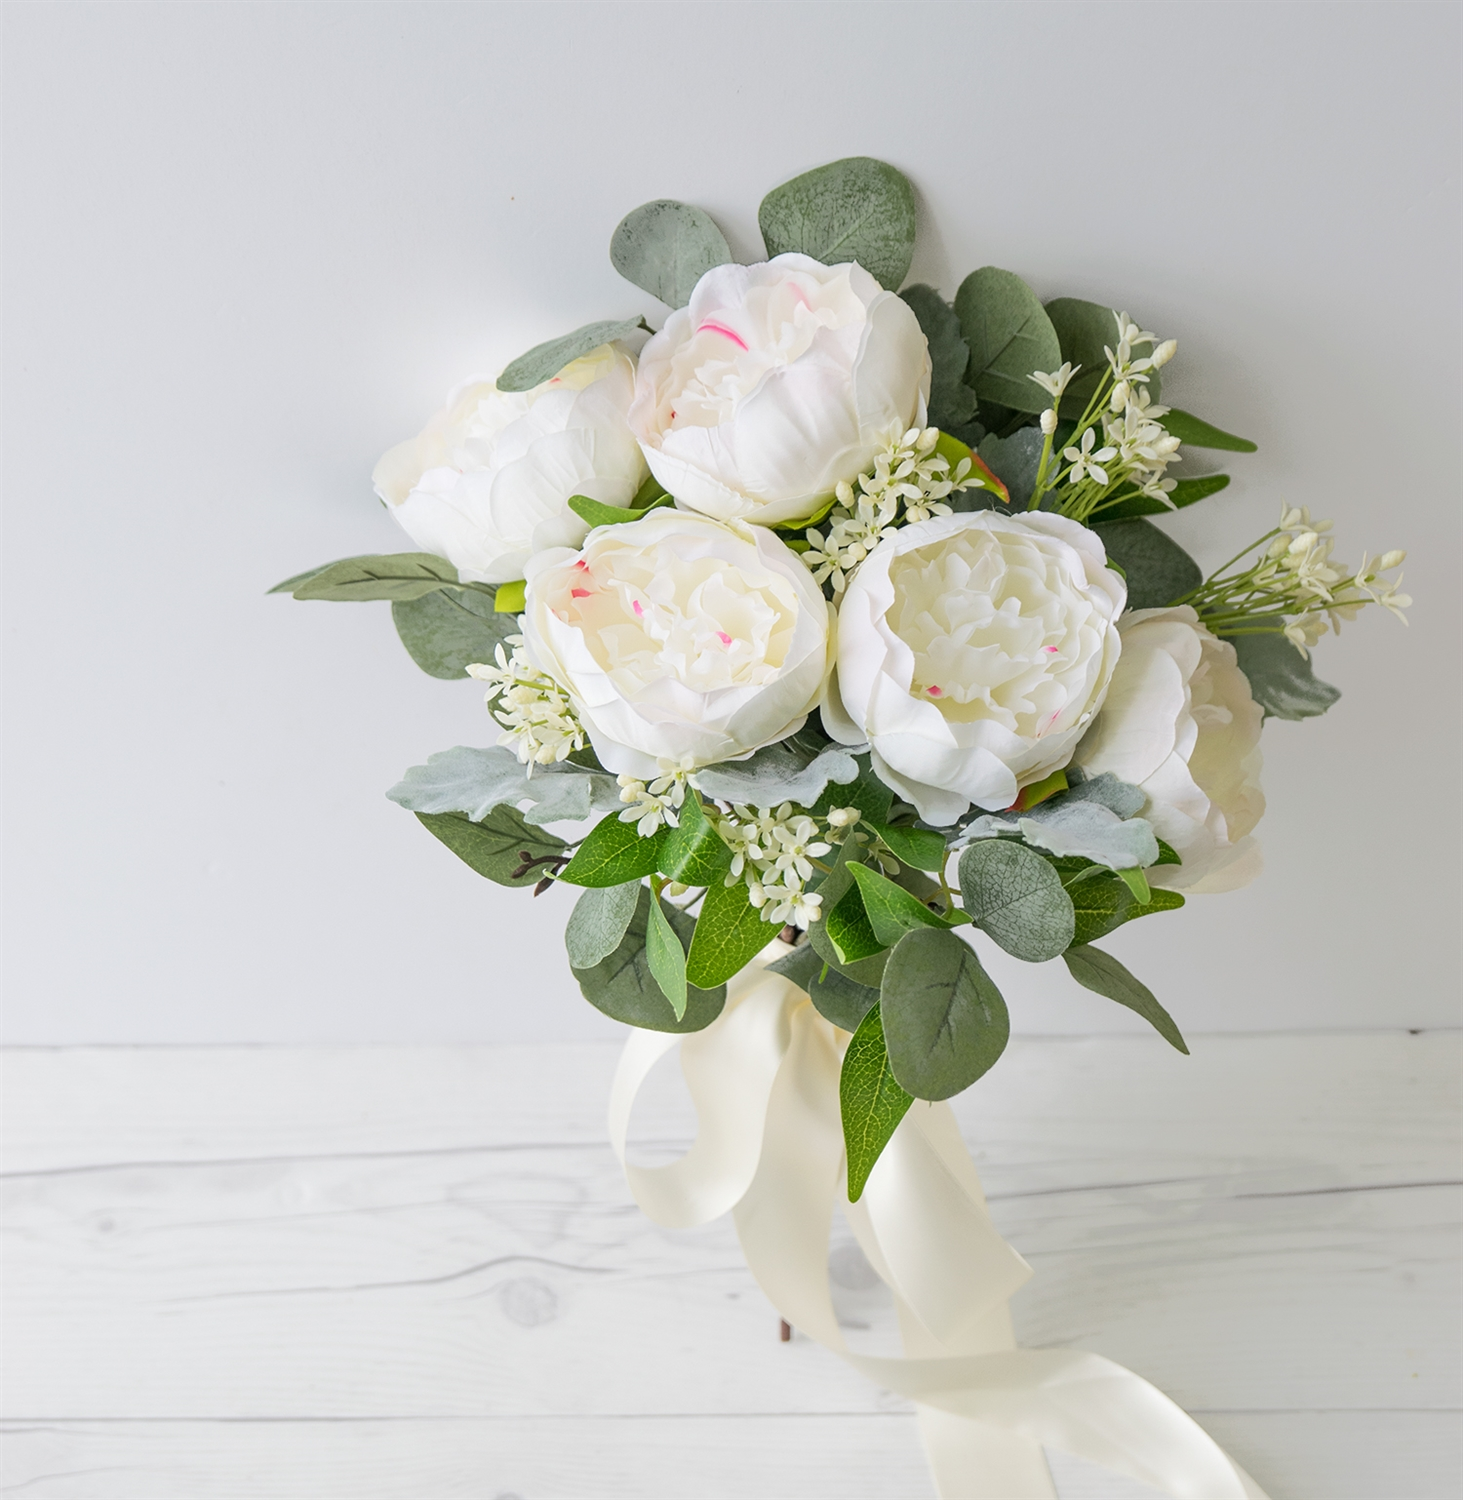 White And Cream Silk Wedding Peony Bouquet The Best Silk Faux Flowers